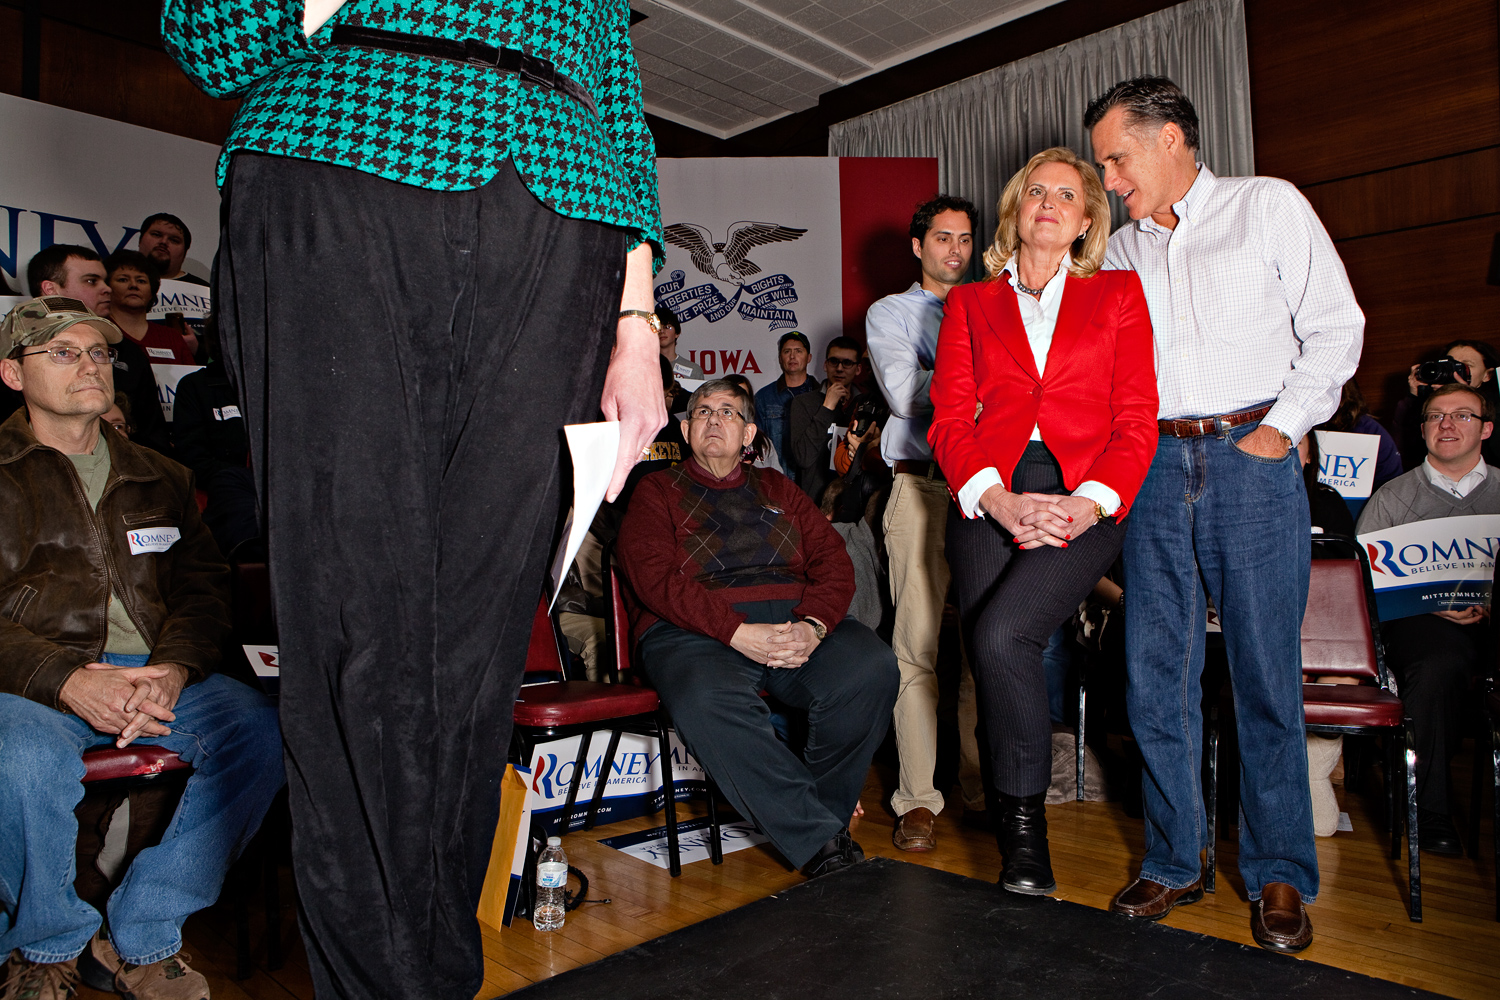 Mitt Romney and his wife Ann host a a grassroots campaign rally at Bayliss Park Hall in Council Bluffs, Iowa on January 1, 2012.